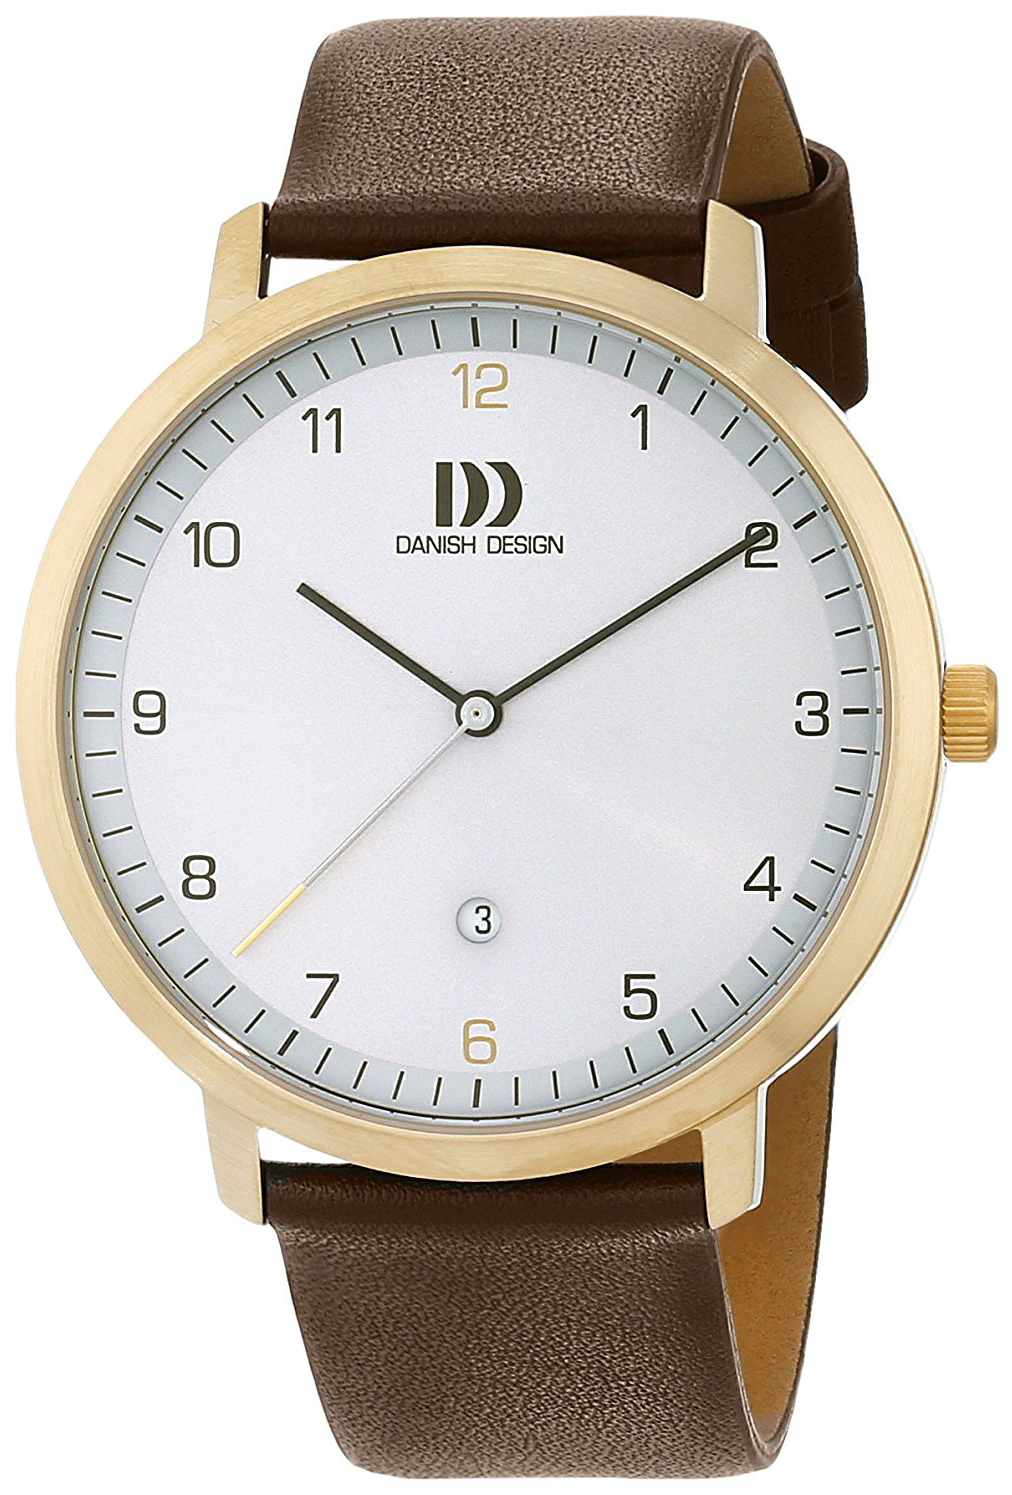 Danish Design Classic Herrklocka 3310092 Vit/Läder Ø42 mm - Danish Design